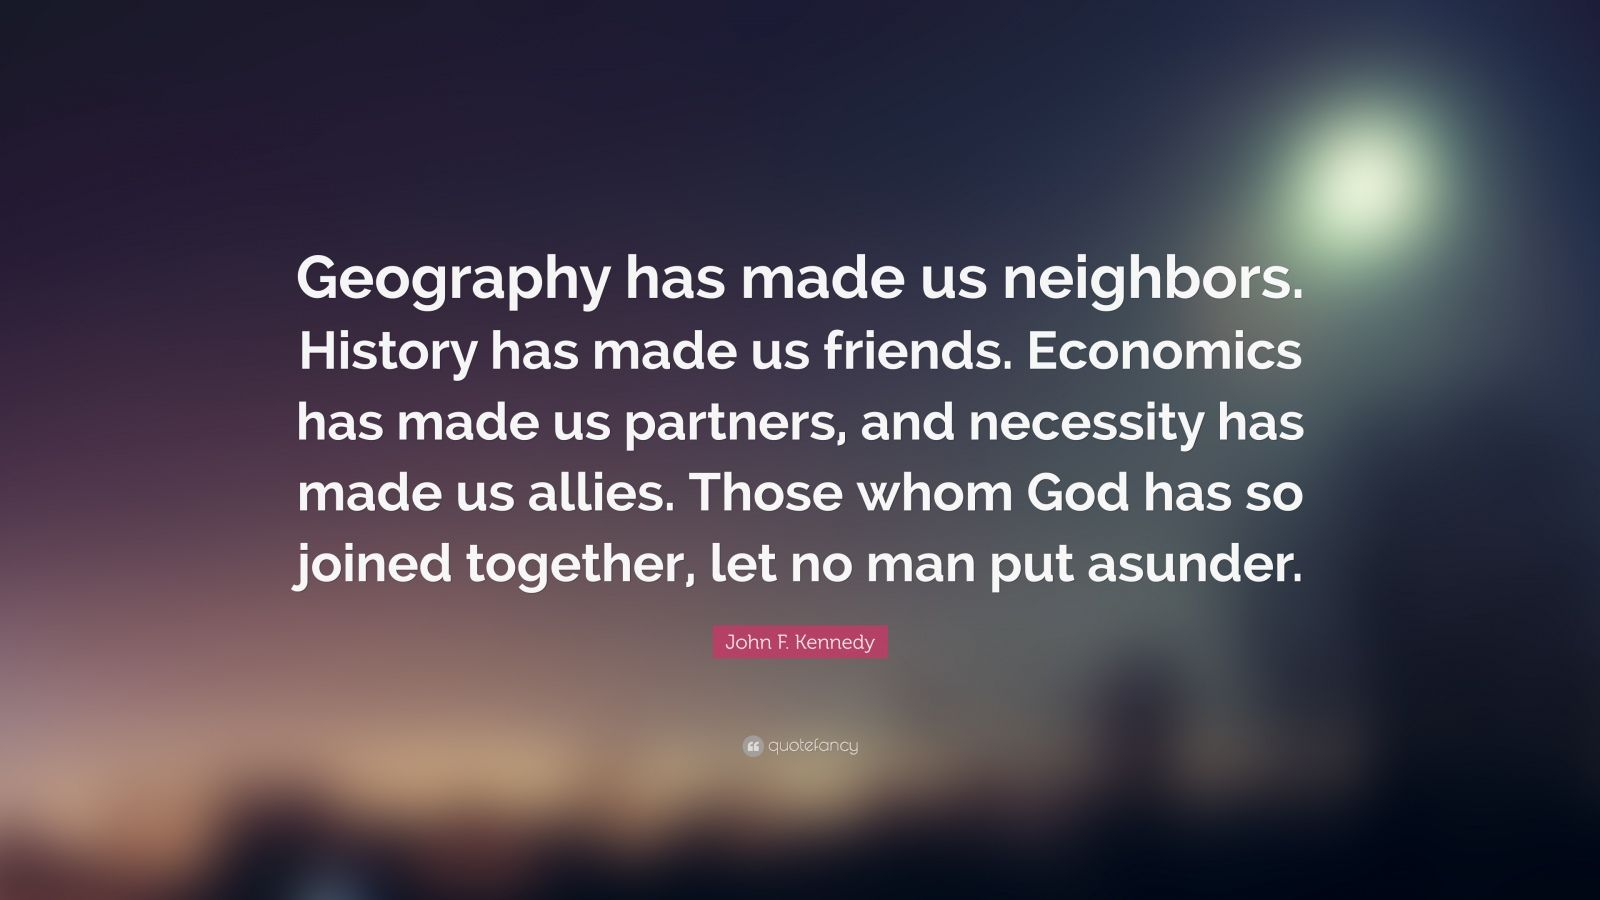 """John F. Kennedy Quote: """"Geography has made us neighbors. History has made us friends. Economics has made us partners, and necessity has made us allies. Those whom God has so joined together, let no man put asunder."""""""